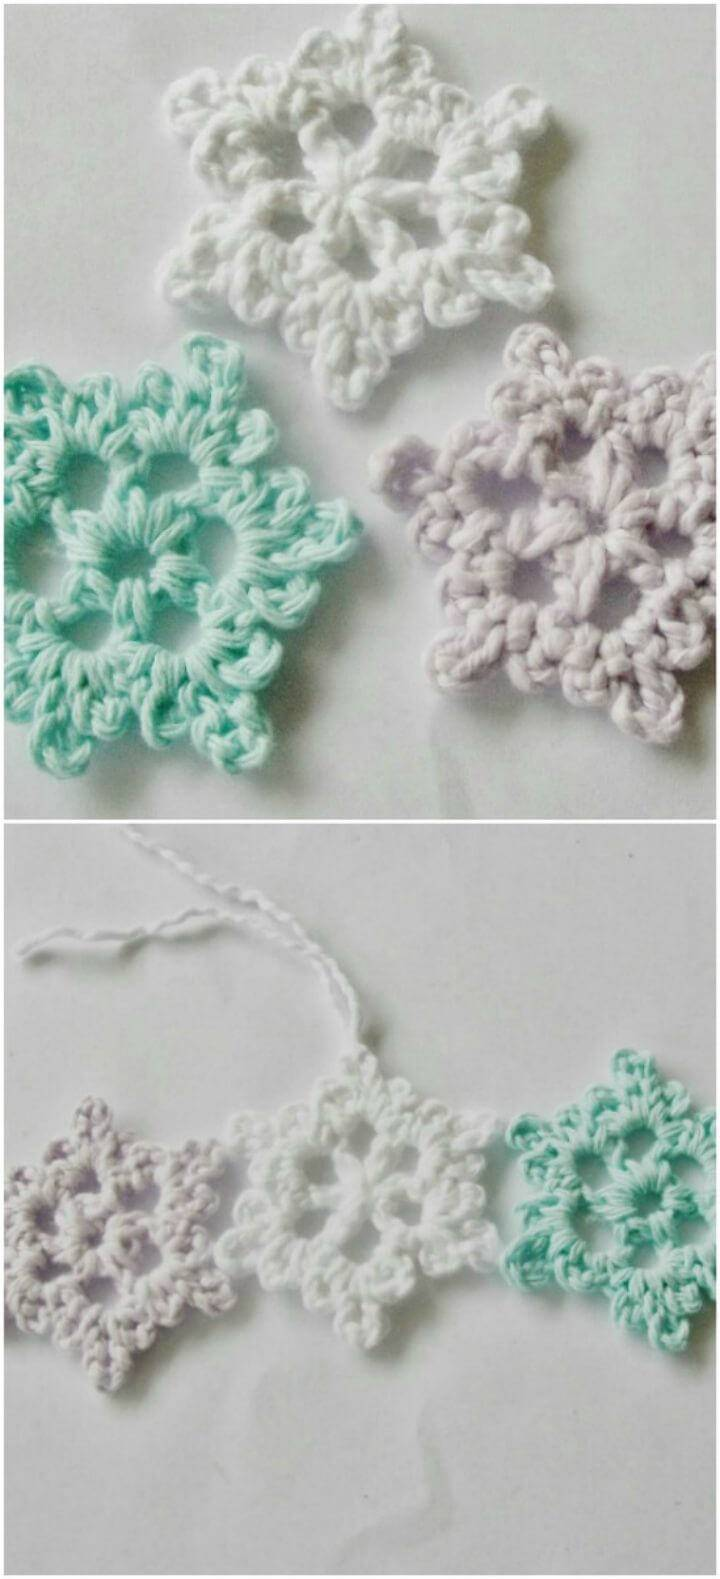 101 free crochet patterns for beginners that are super easy diy easy crochet snowflake pattern bankloansurffo Gallery